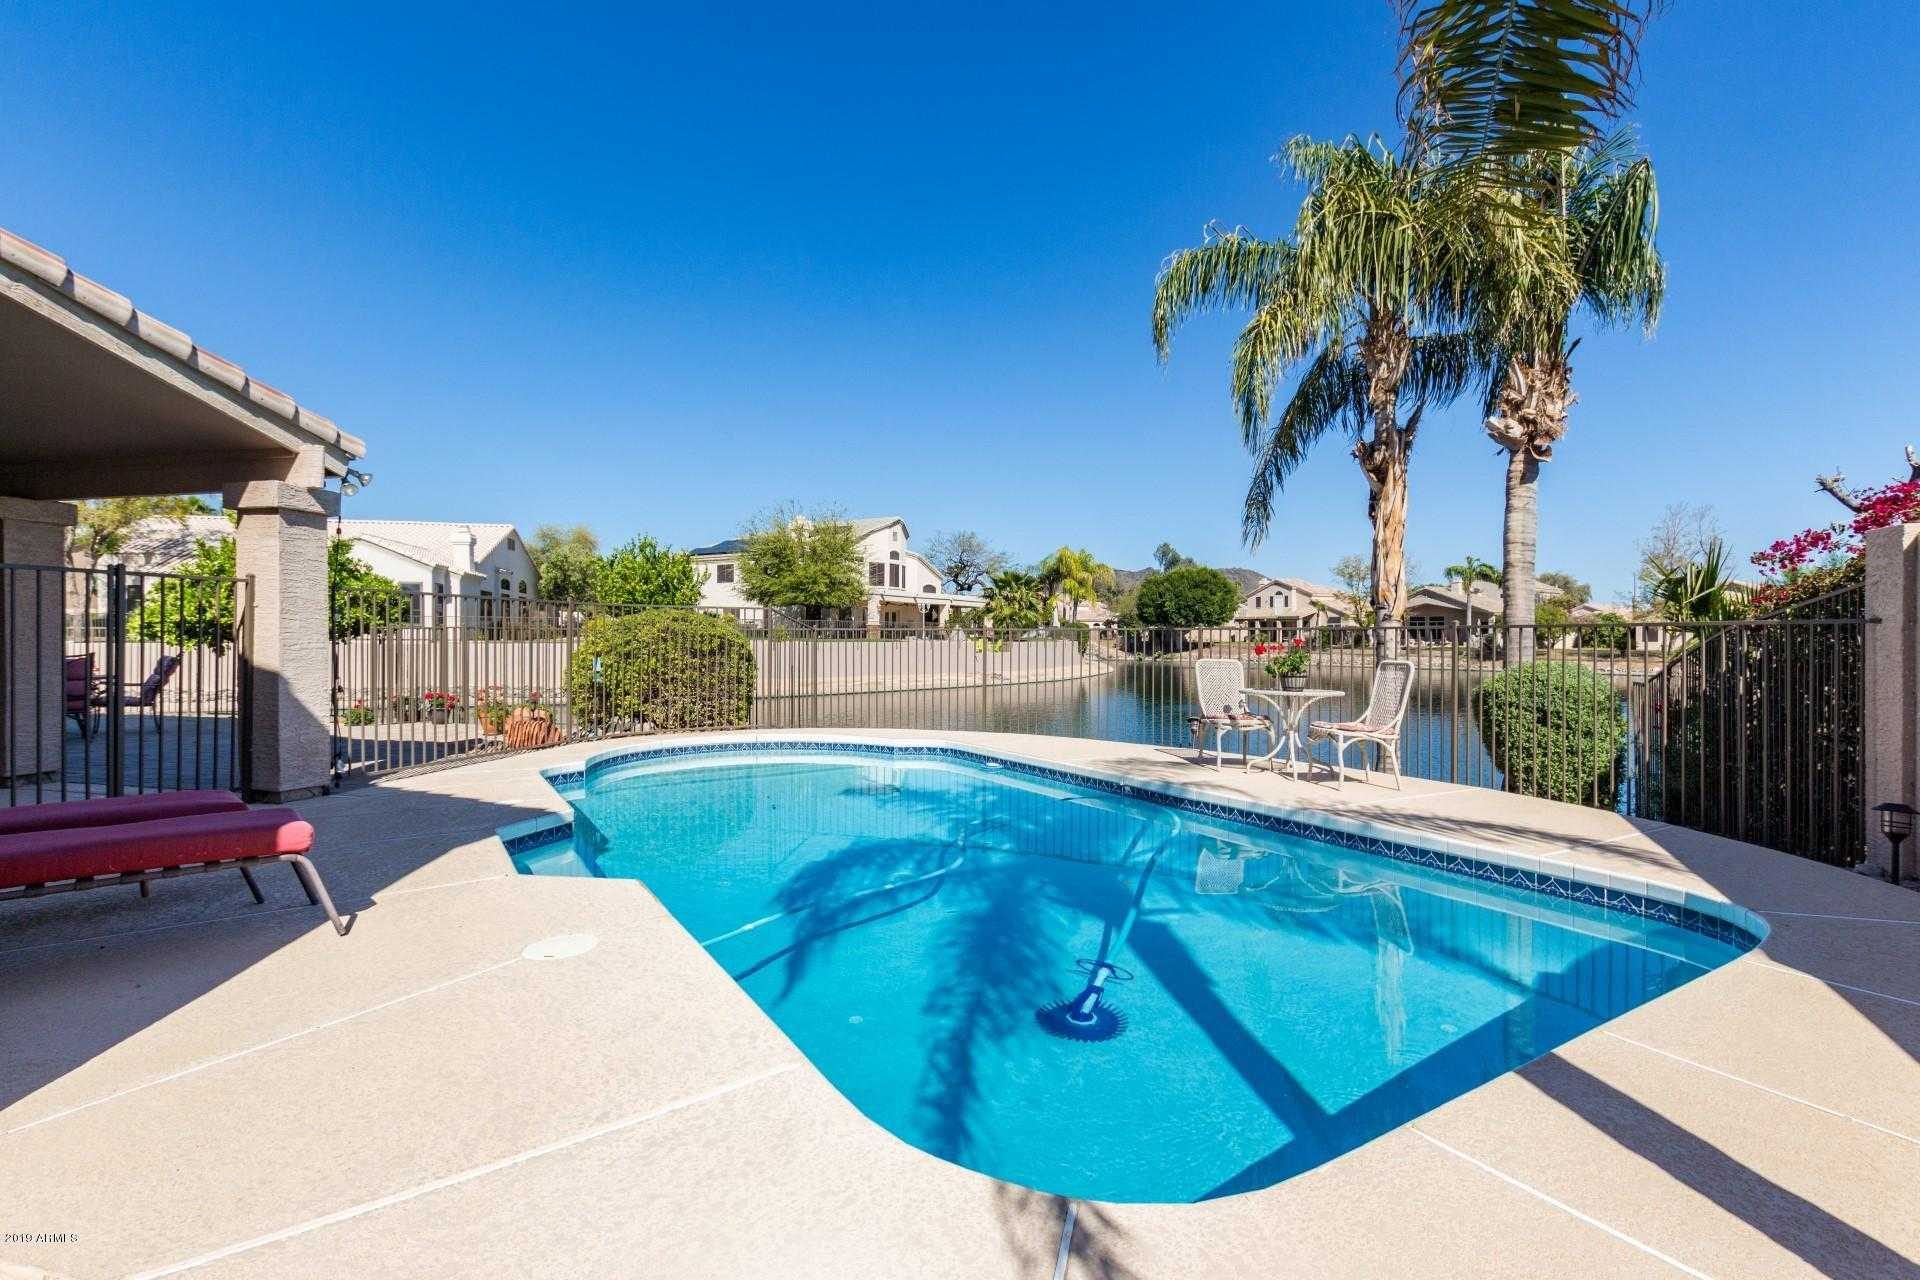 $443,975 - 4Br/3Ba - Home for Sale in Tuscany Point, Glendale